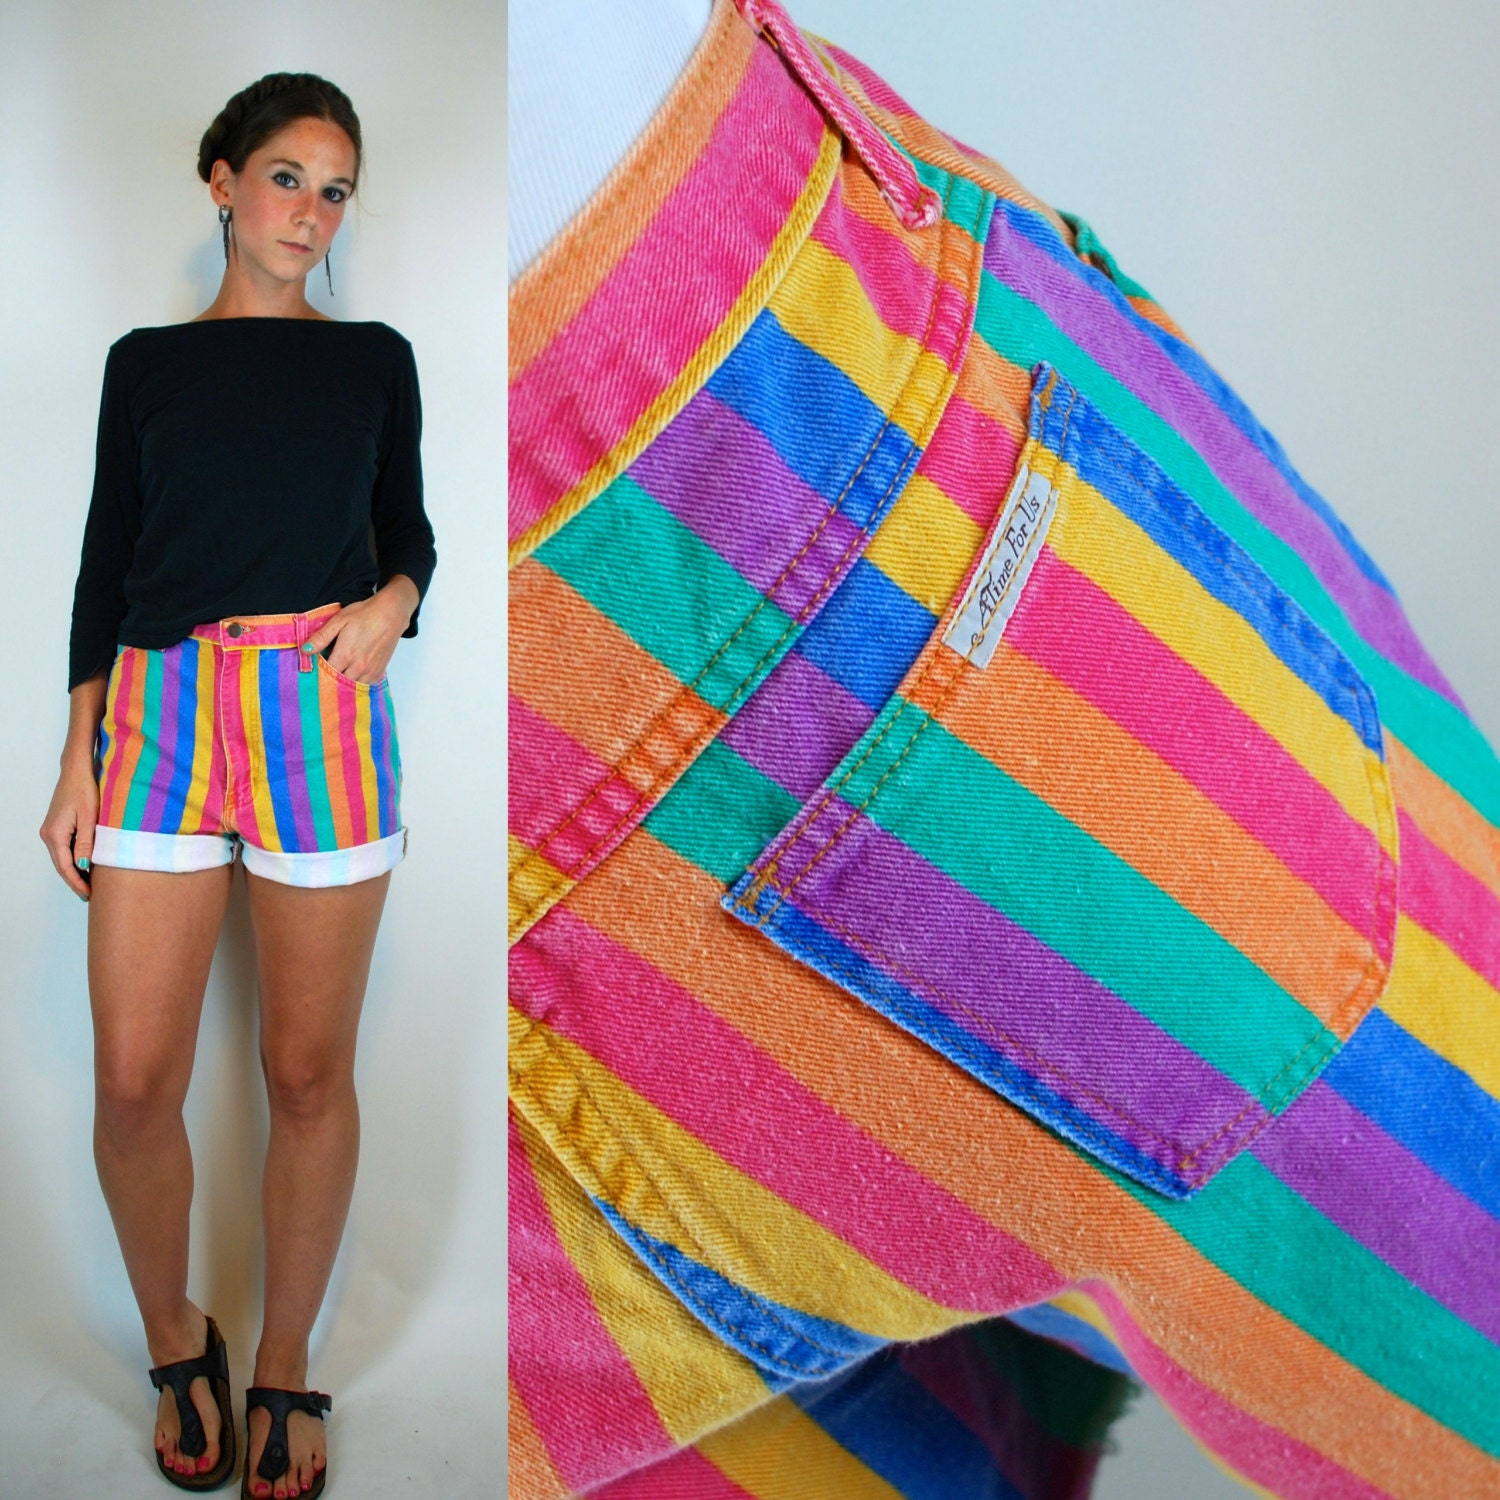 You searched for: rainbow shorts! Etsy is the home to thousands of handmade, vintage, and one-of-a-kind products and gifts related to your search. No matter what you're looking for or where you are in the world, our global marketplace of sellers can help you find unique and affordable options. Let's get started!